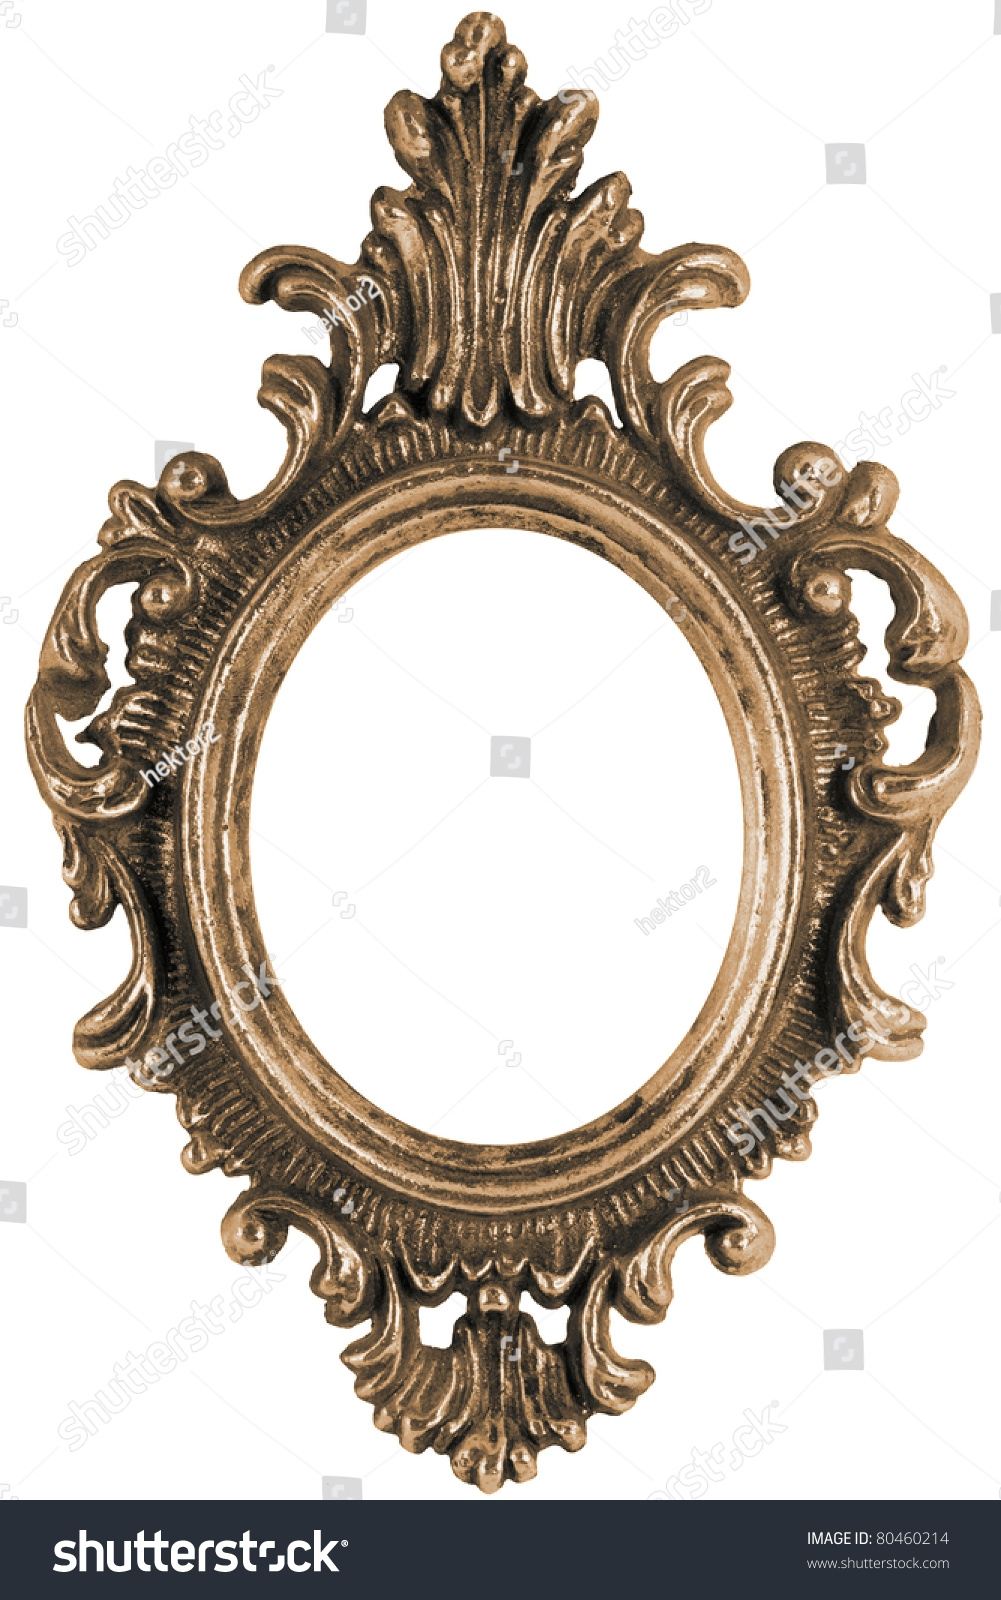 Massive Old Stylistic Mirror Frame Stock Photo 80460214 Shutterstock Pertaining To Old Style Mirror (Image 9 of 15)